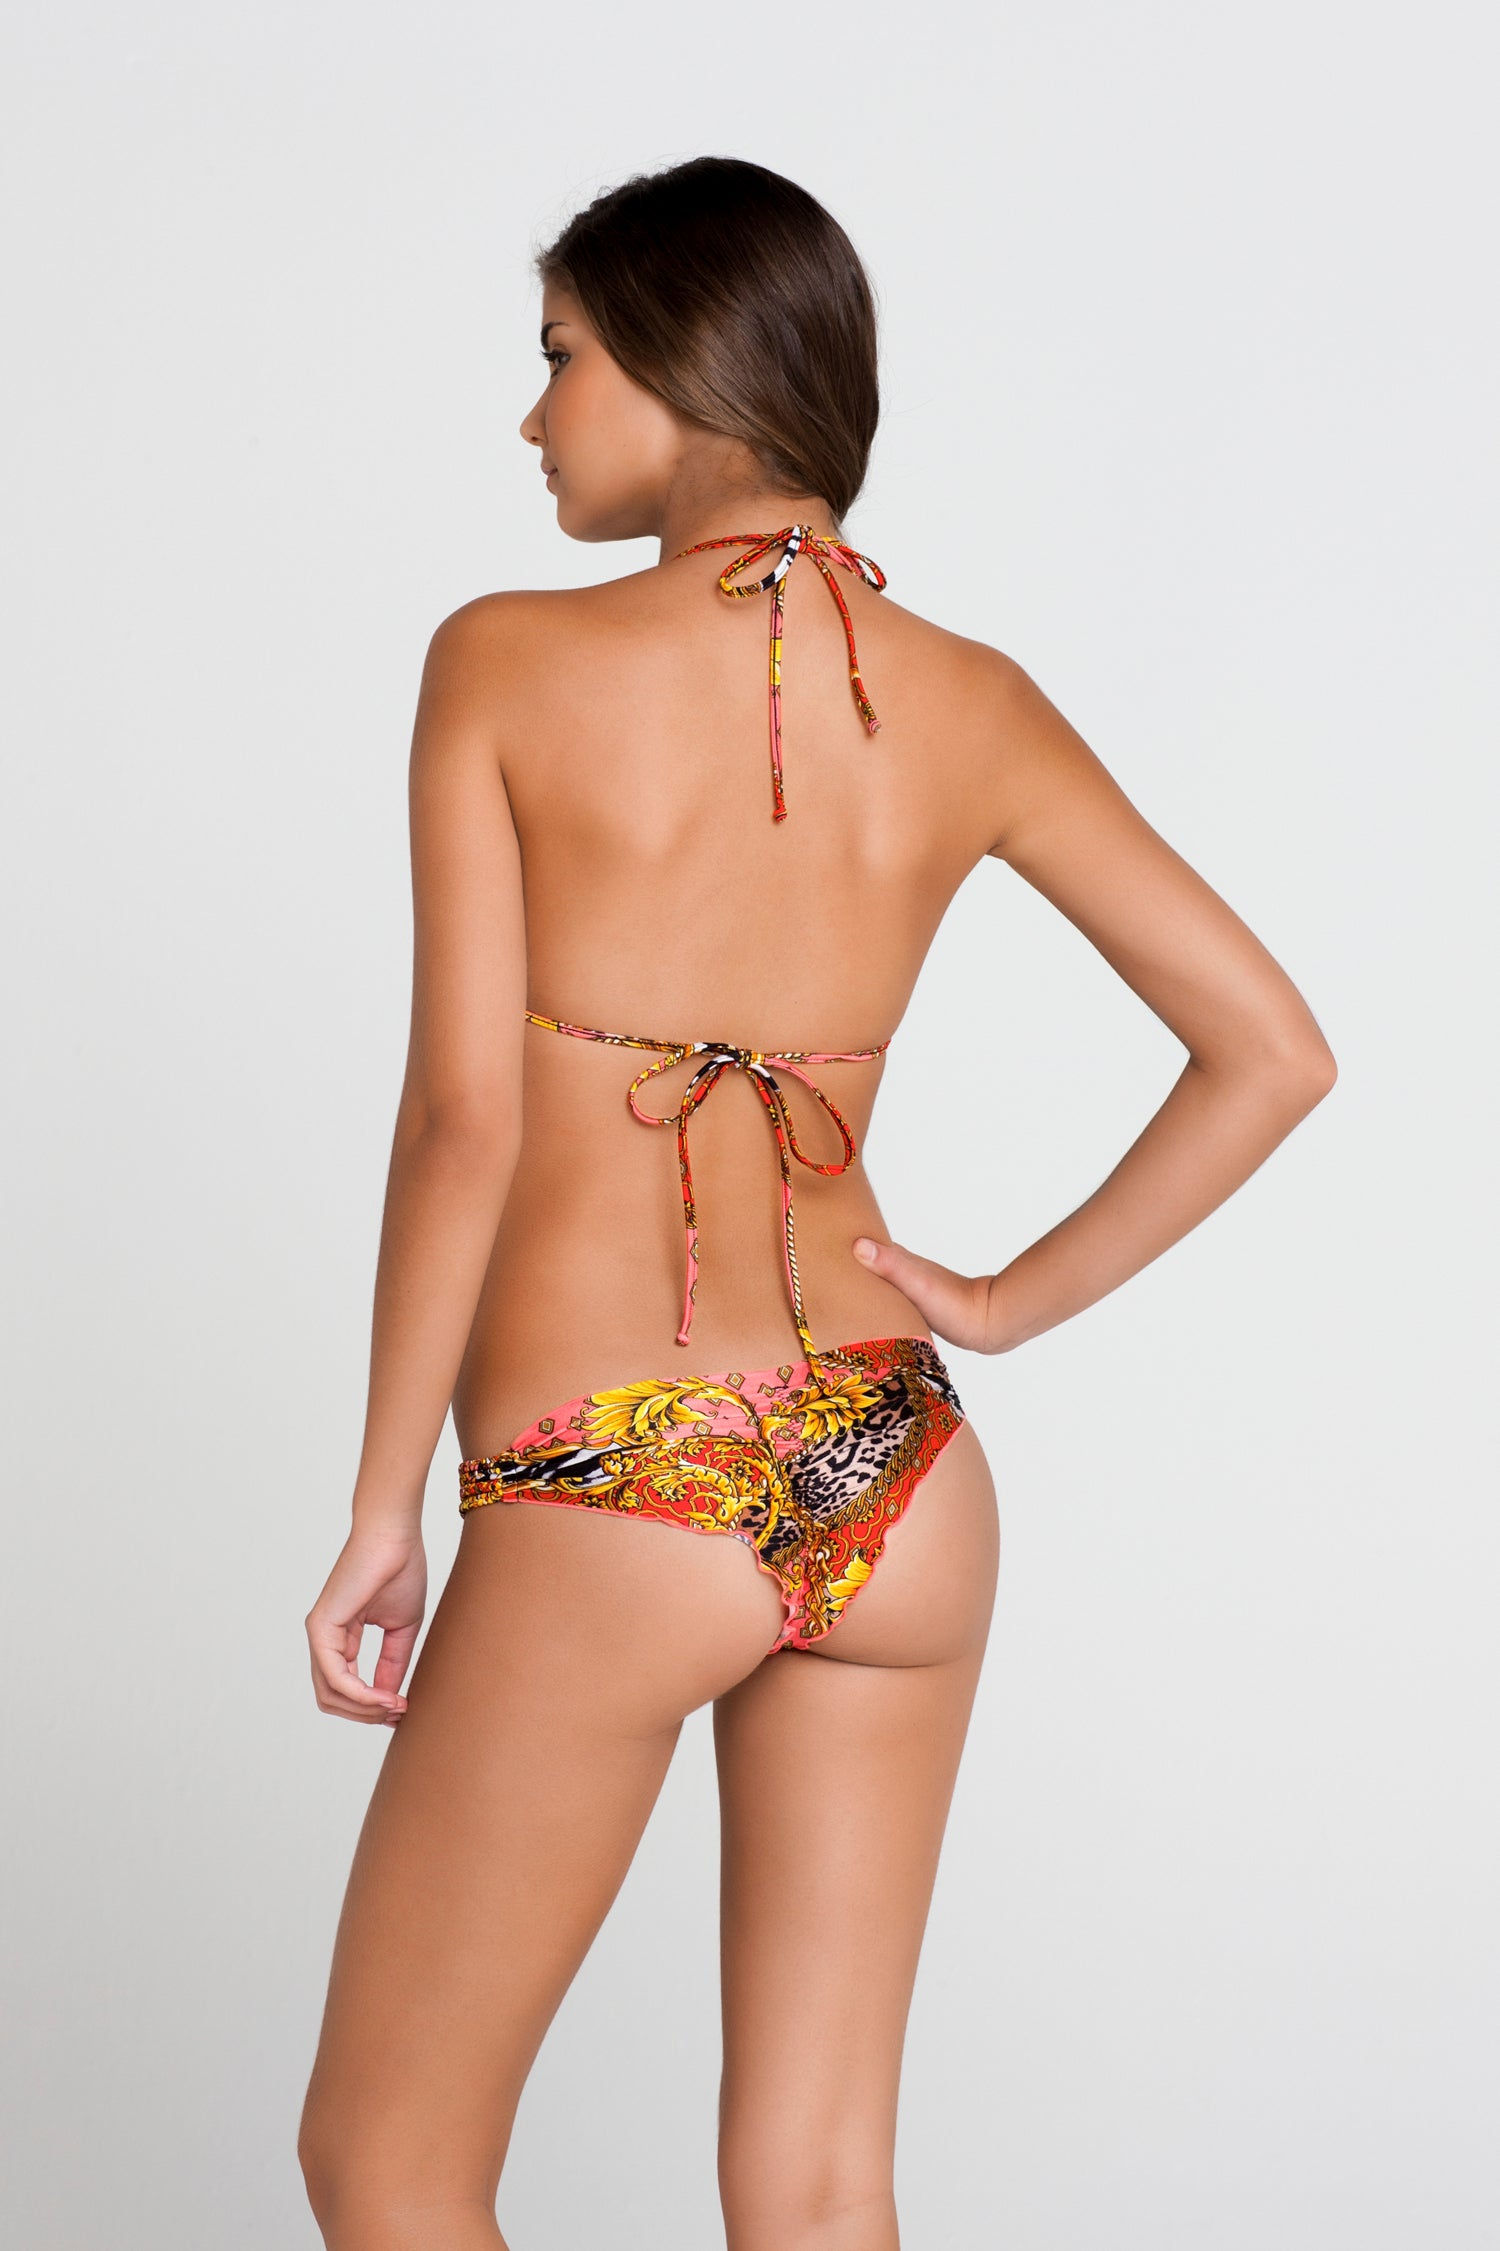 DANCING IN PARADISE - Molded Push Up Bandeau Halter Top & Multi Braid Brazilian Ruched Back Bottom • Multicolor